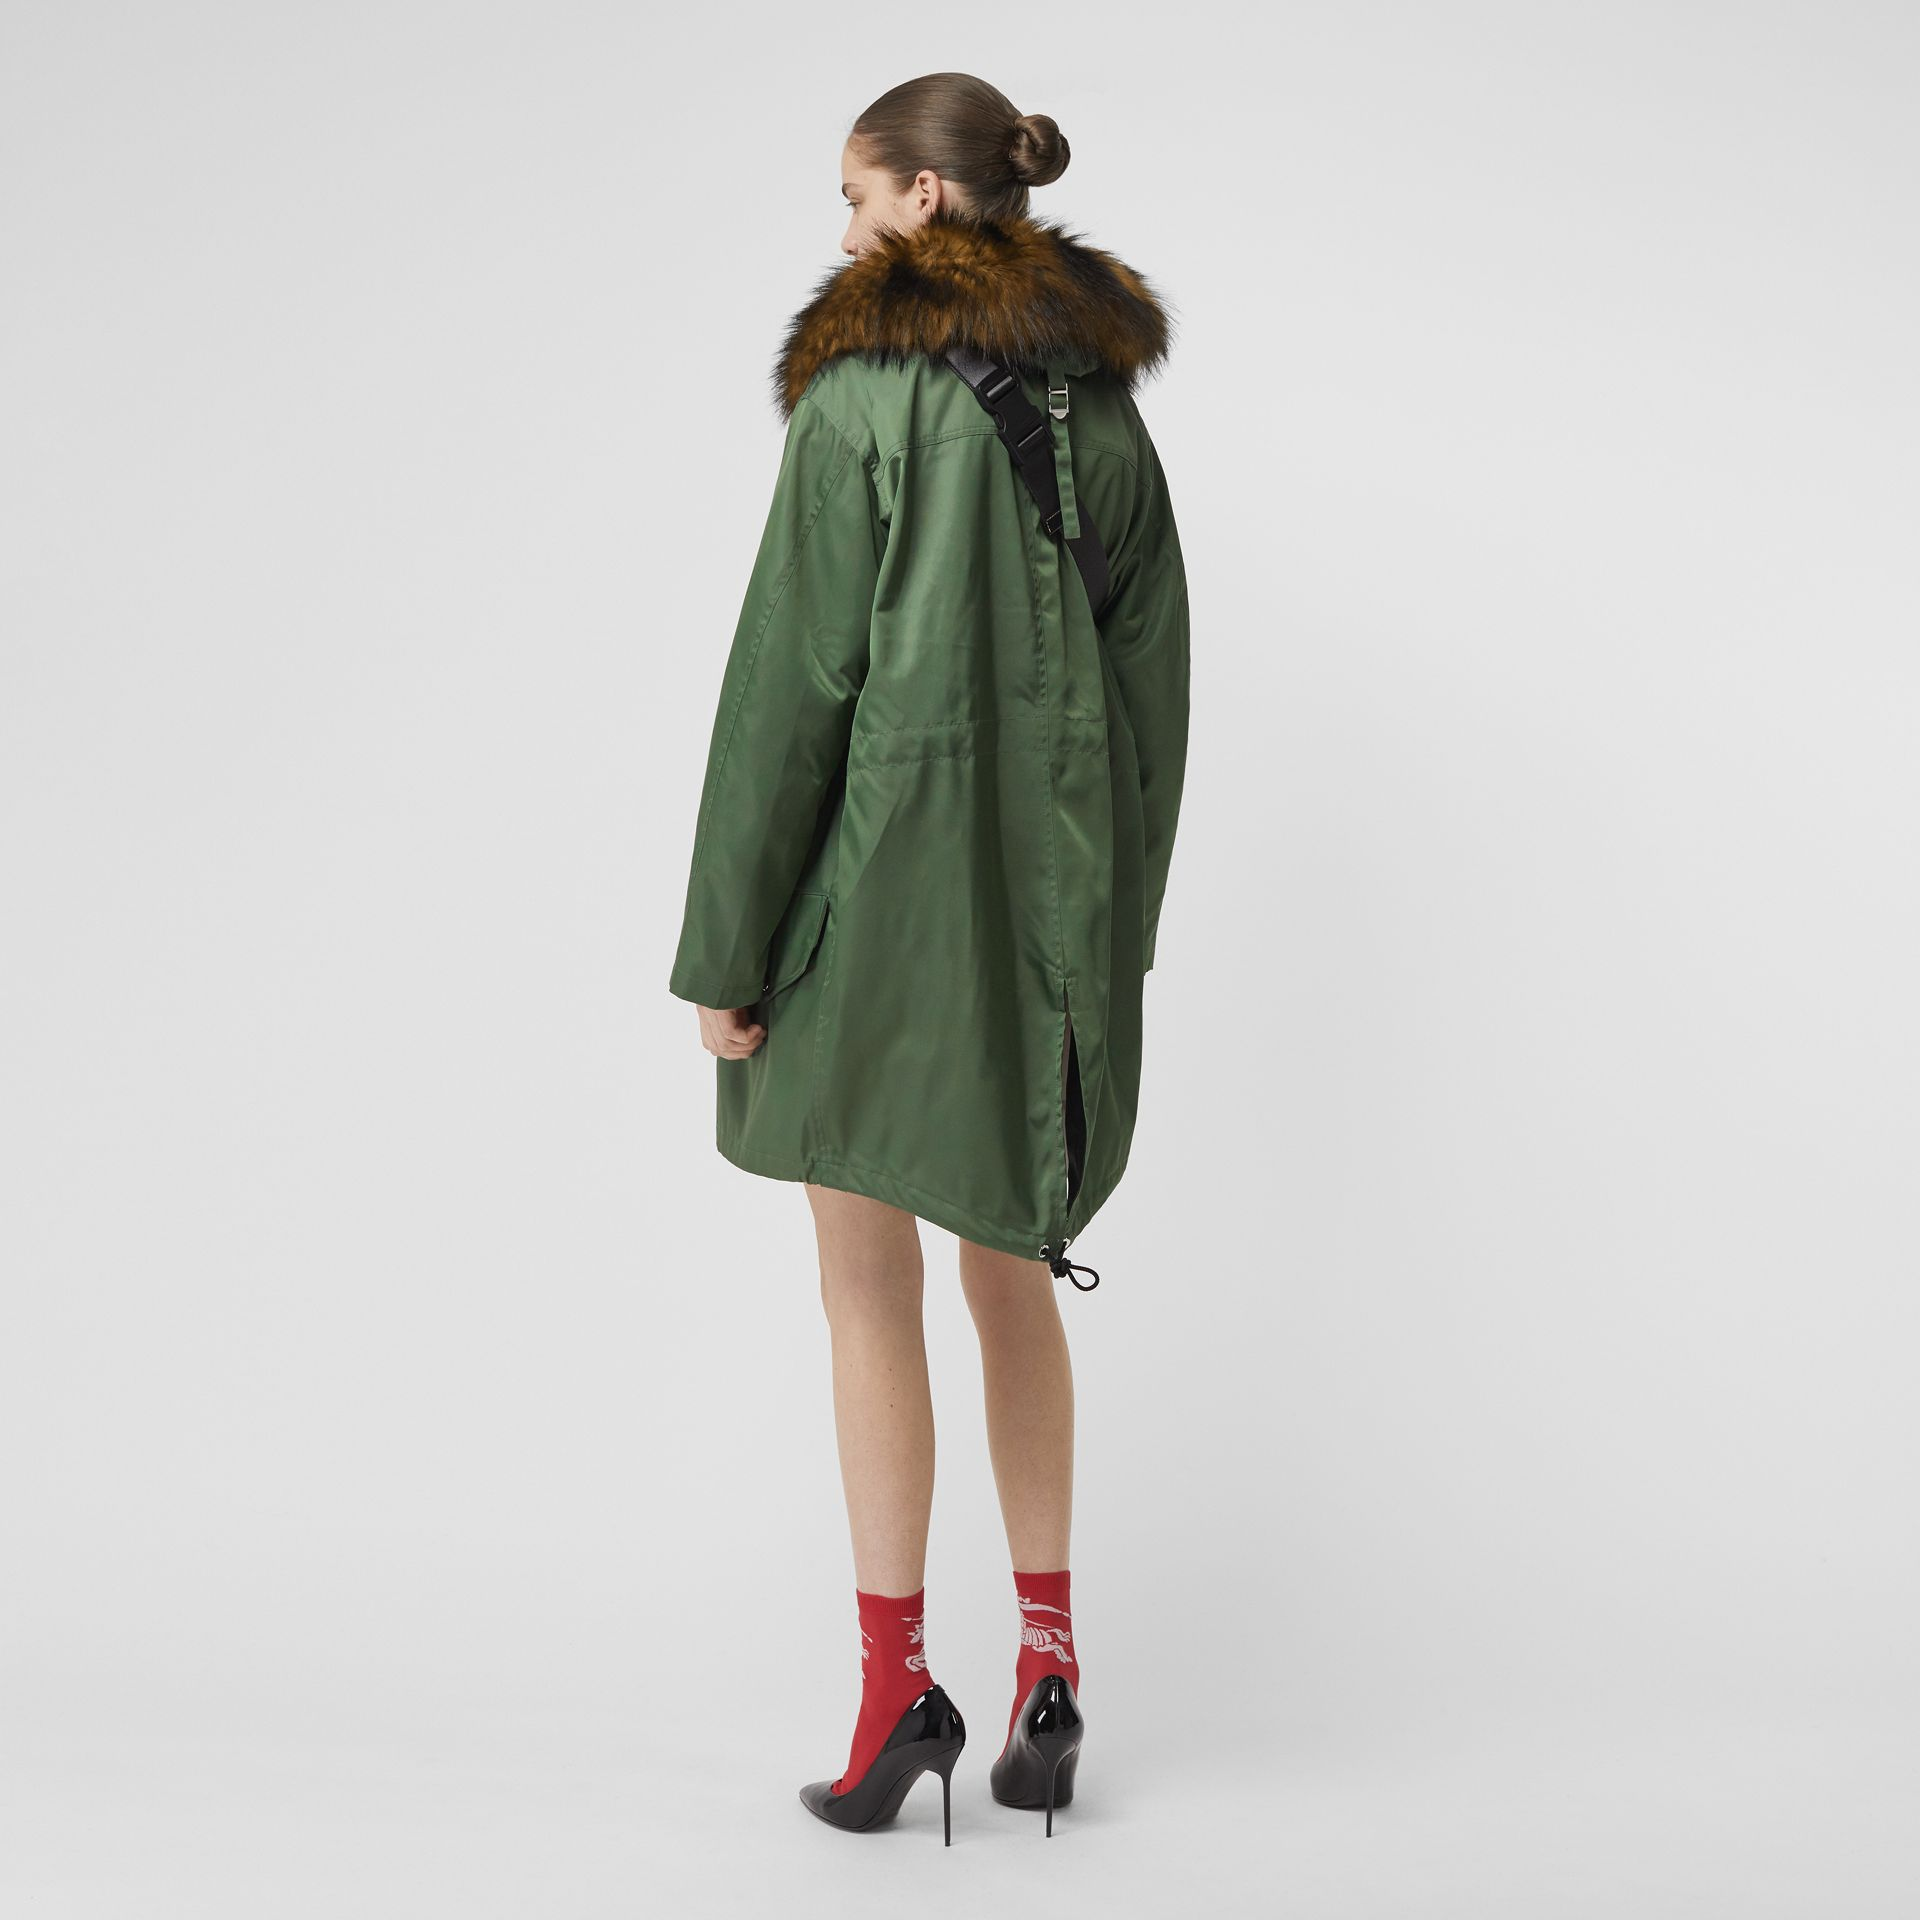 Faux Fur Trim Parka with Detachable Warmer in Grass Green - Women | Burberry - gallery image 2